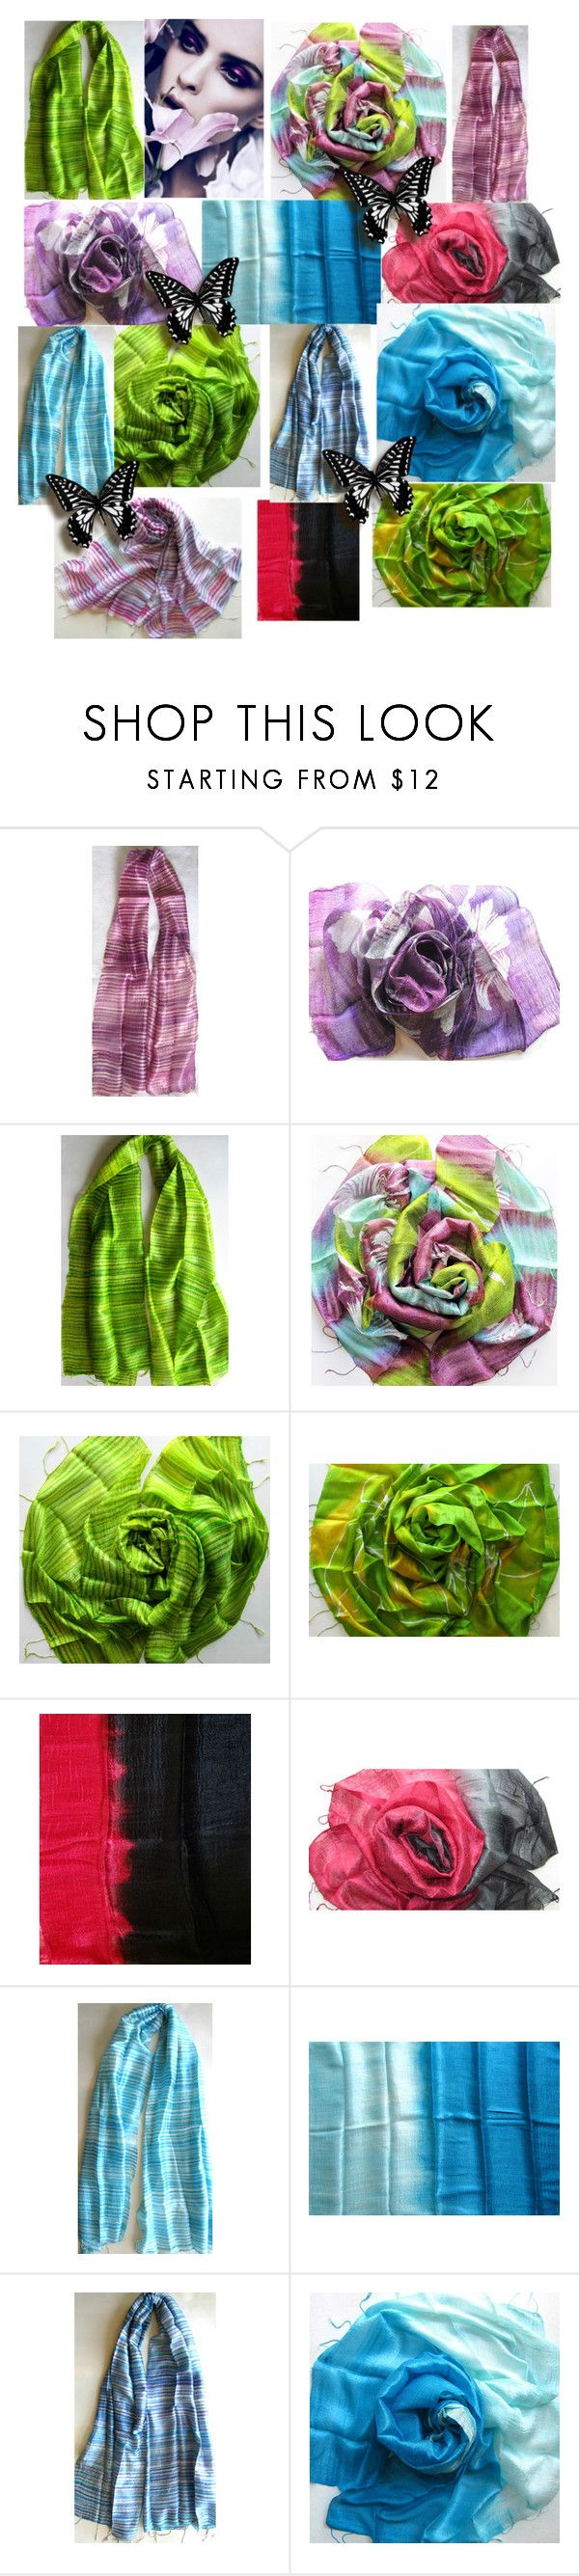 PlanetEarthHandmade by anna-recycle on Polyvore featuring Cadeau, wedding, silk, handmade and handwoven